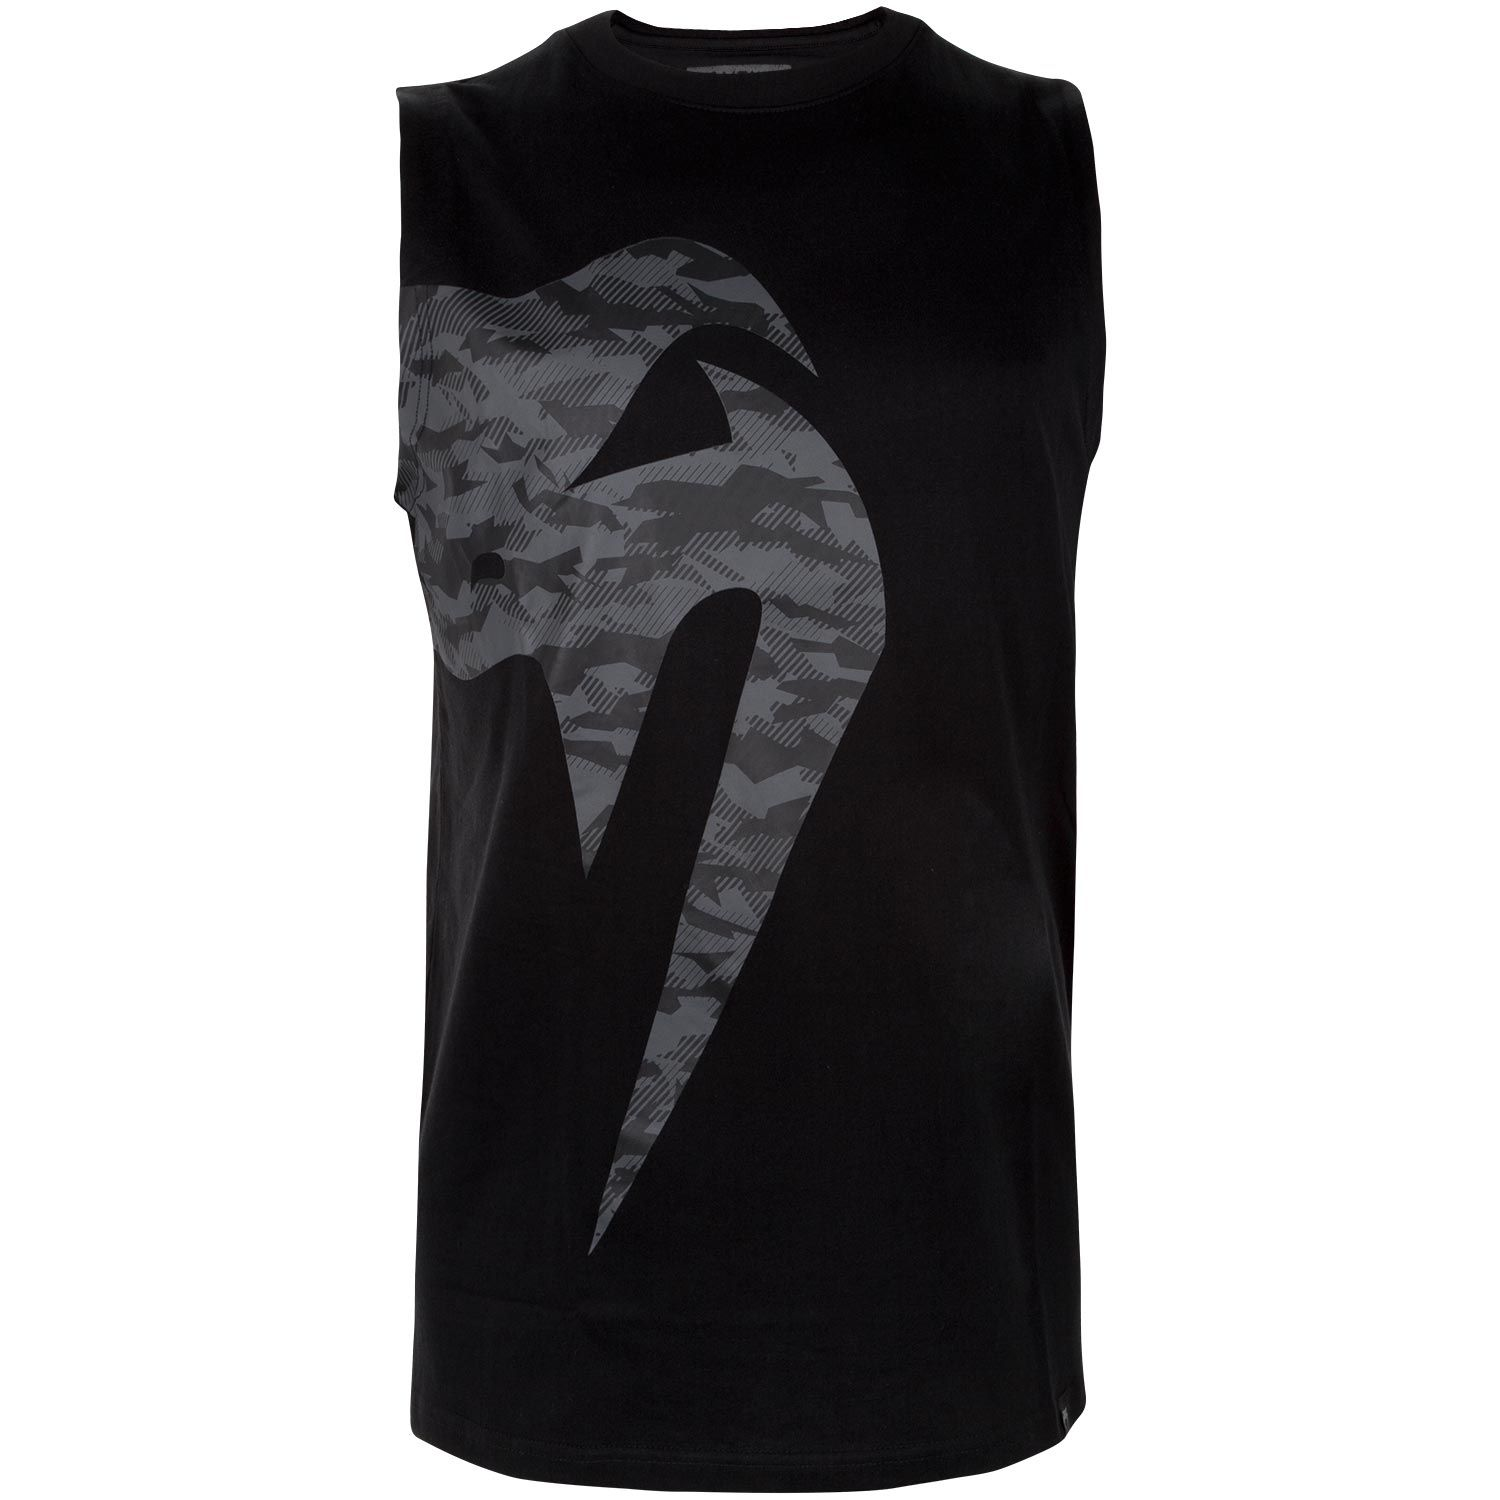 Venum Giant Camo 2.0 tank top - Black/Urban Camo